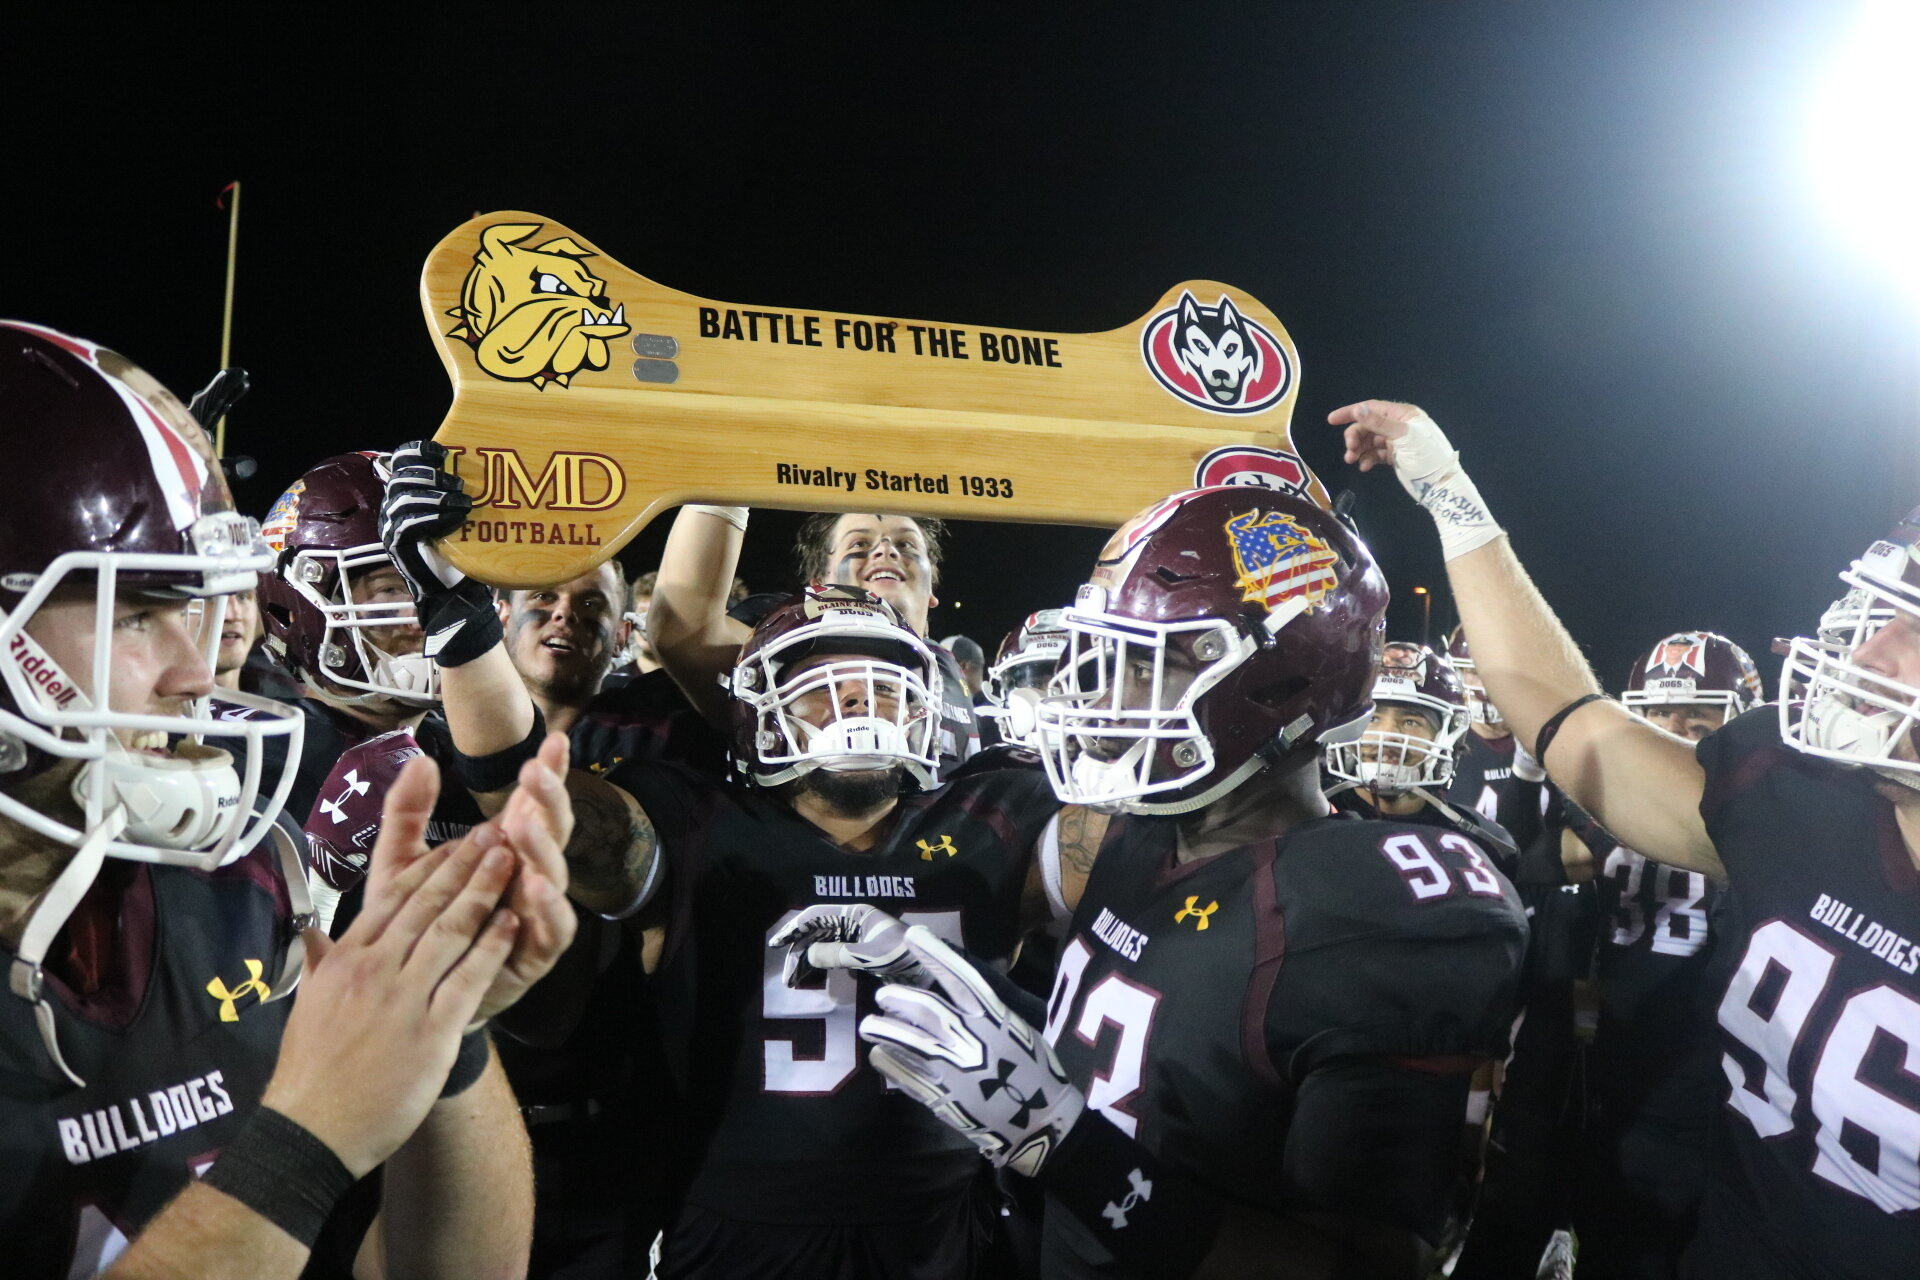 """The Bulldogs celebrate keeping """"The Bone"""" for another year following their 20-14 defeat of the St. Cloud State Huskies. (Photo courtesy of Drew Smith/UMD Athletics)"""